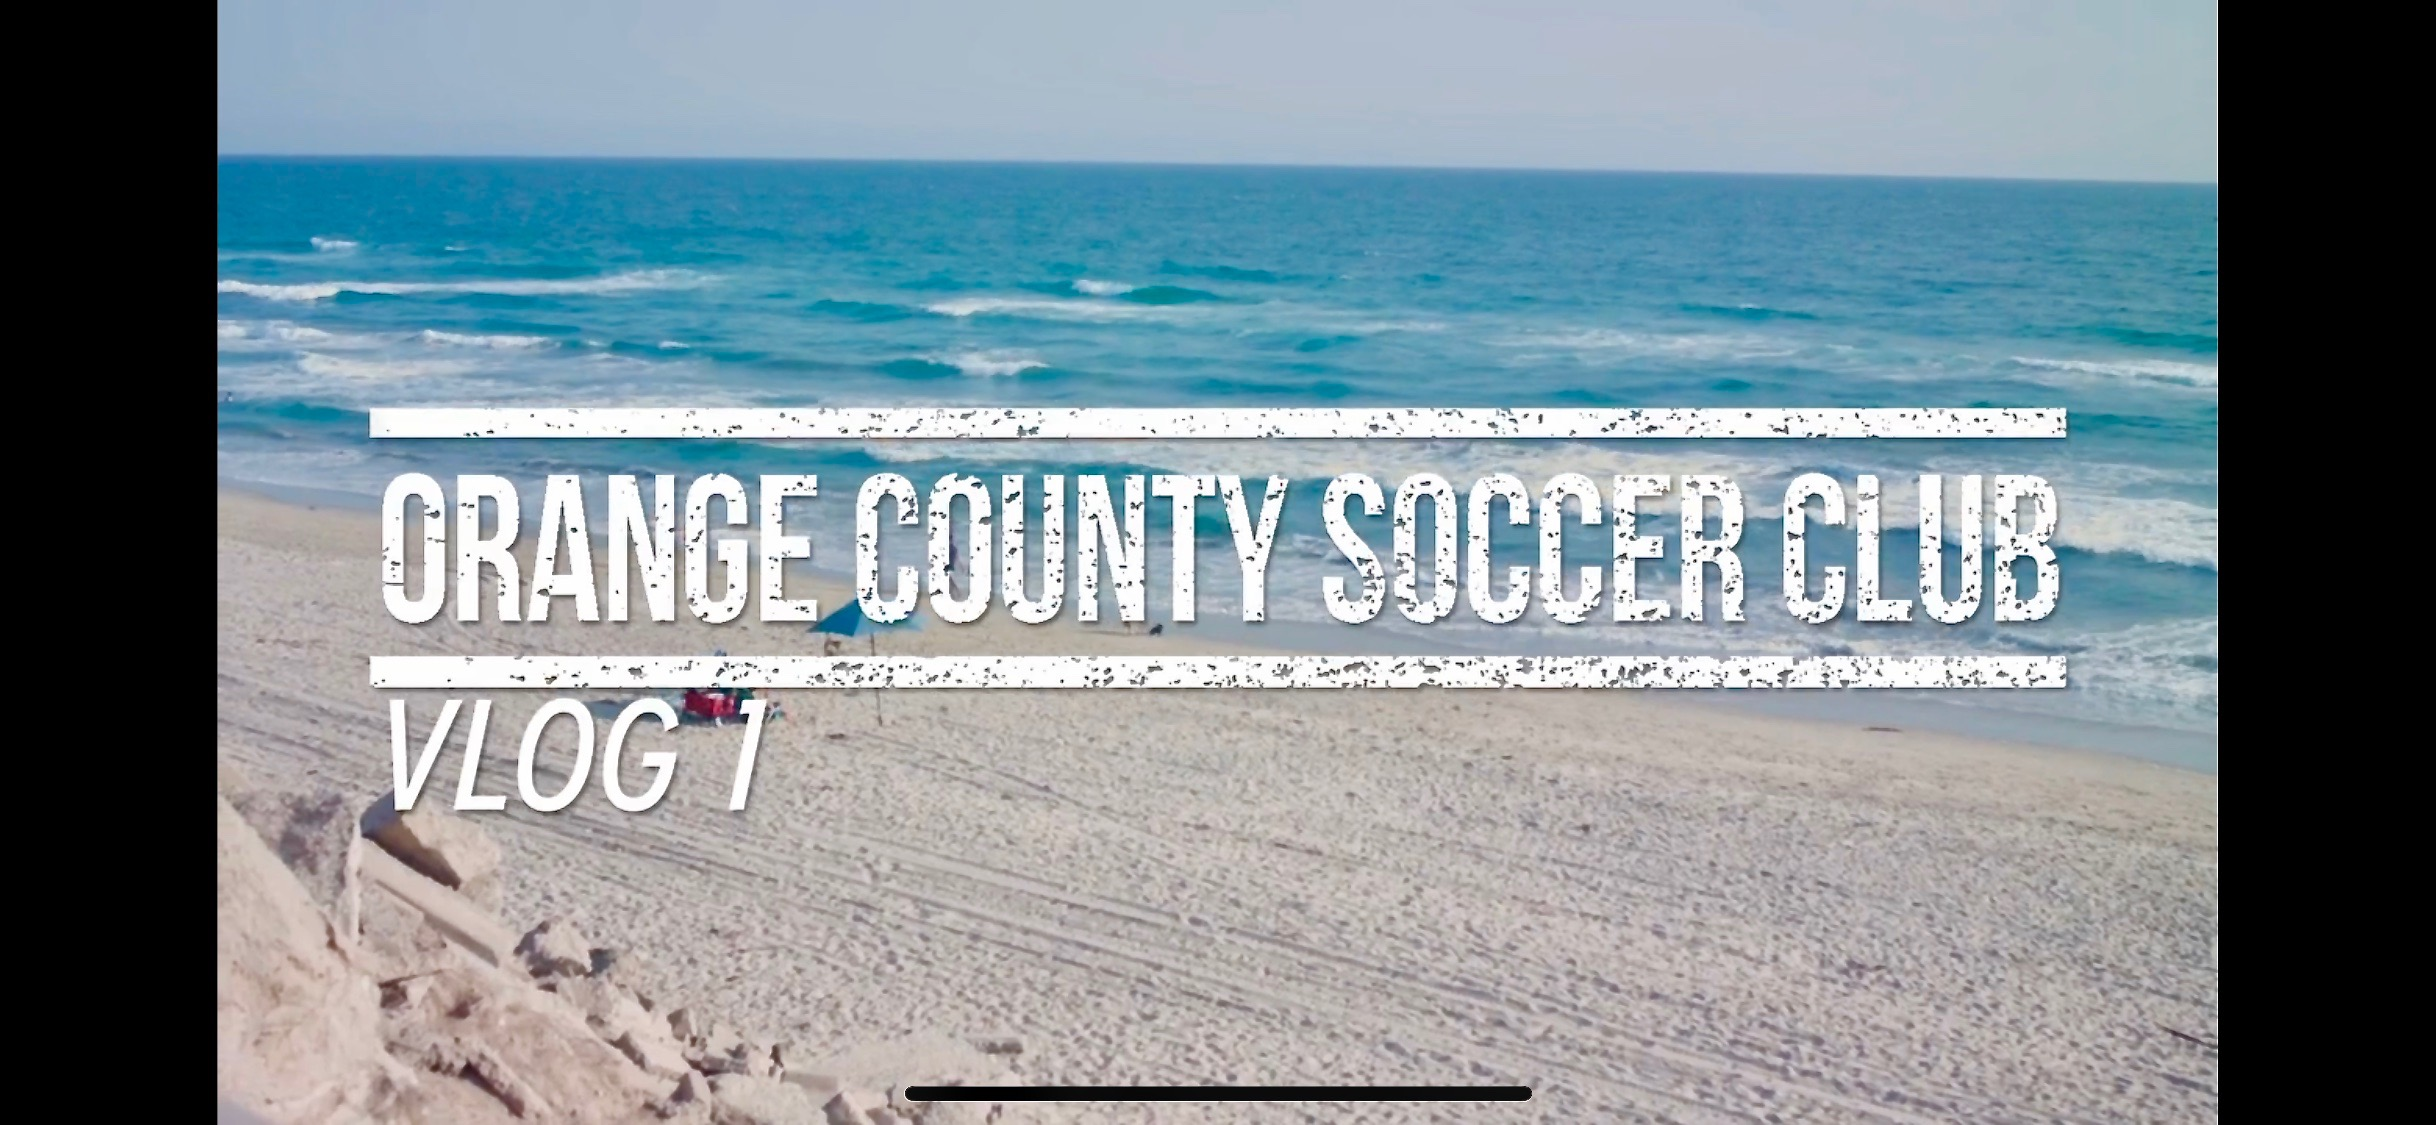 Lagoa productions created and produced Vlog Series for LAFC's 2nd team, OCSC.